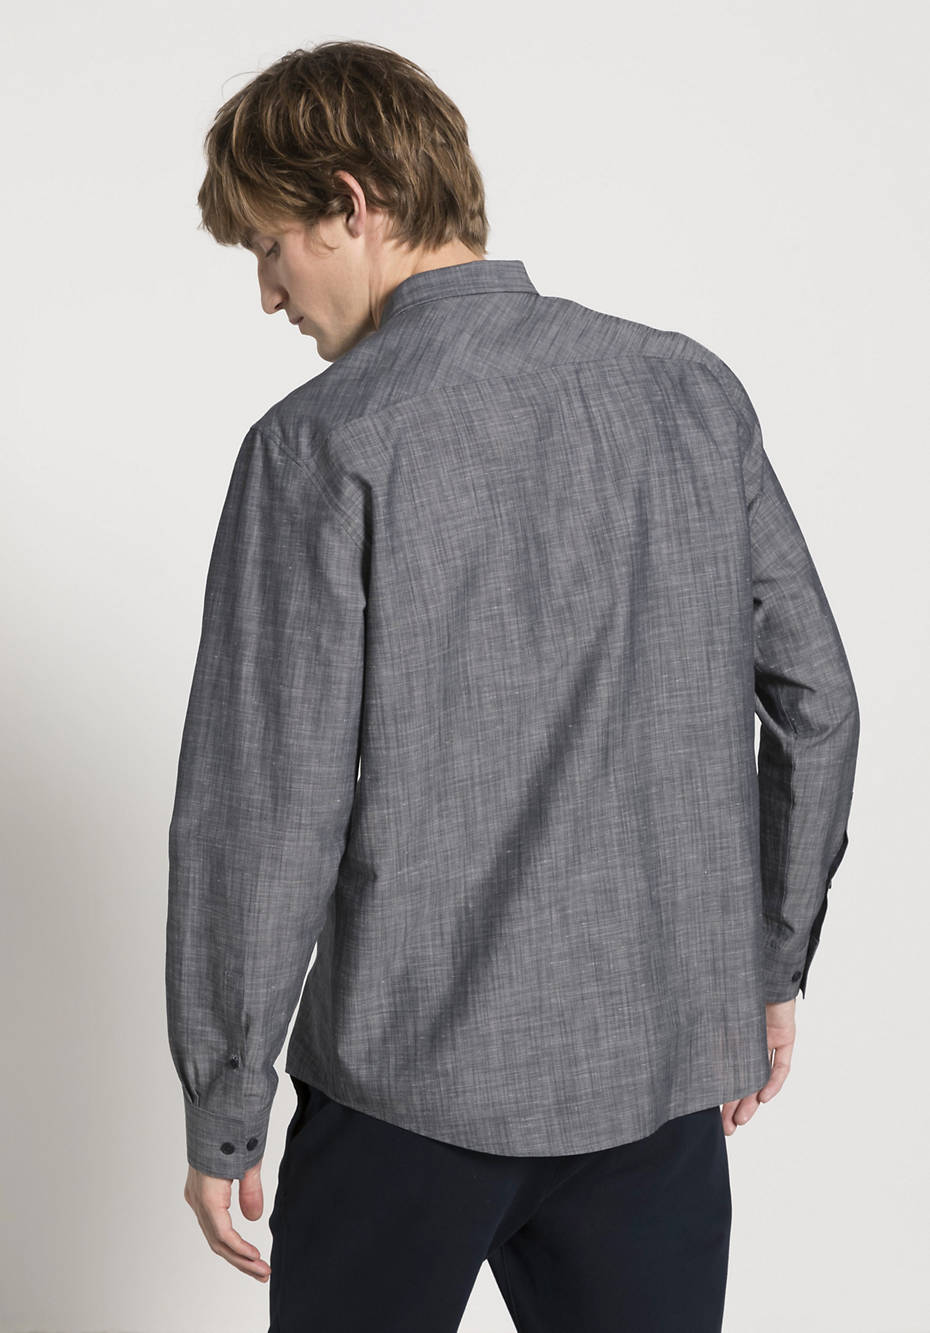 Comfort Fit shirt made of organic cotton with linen